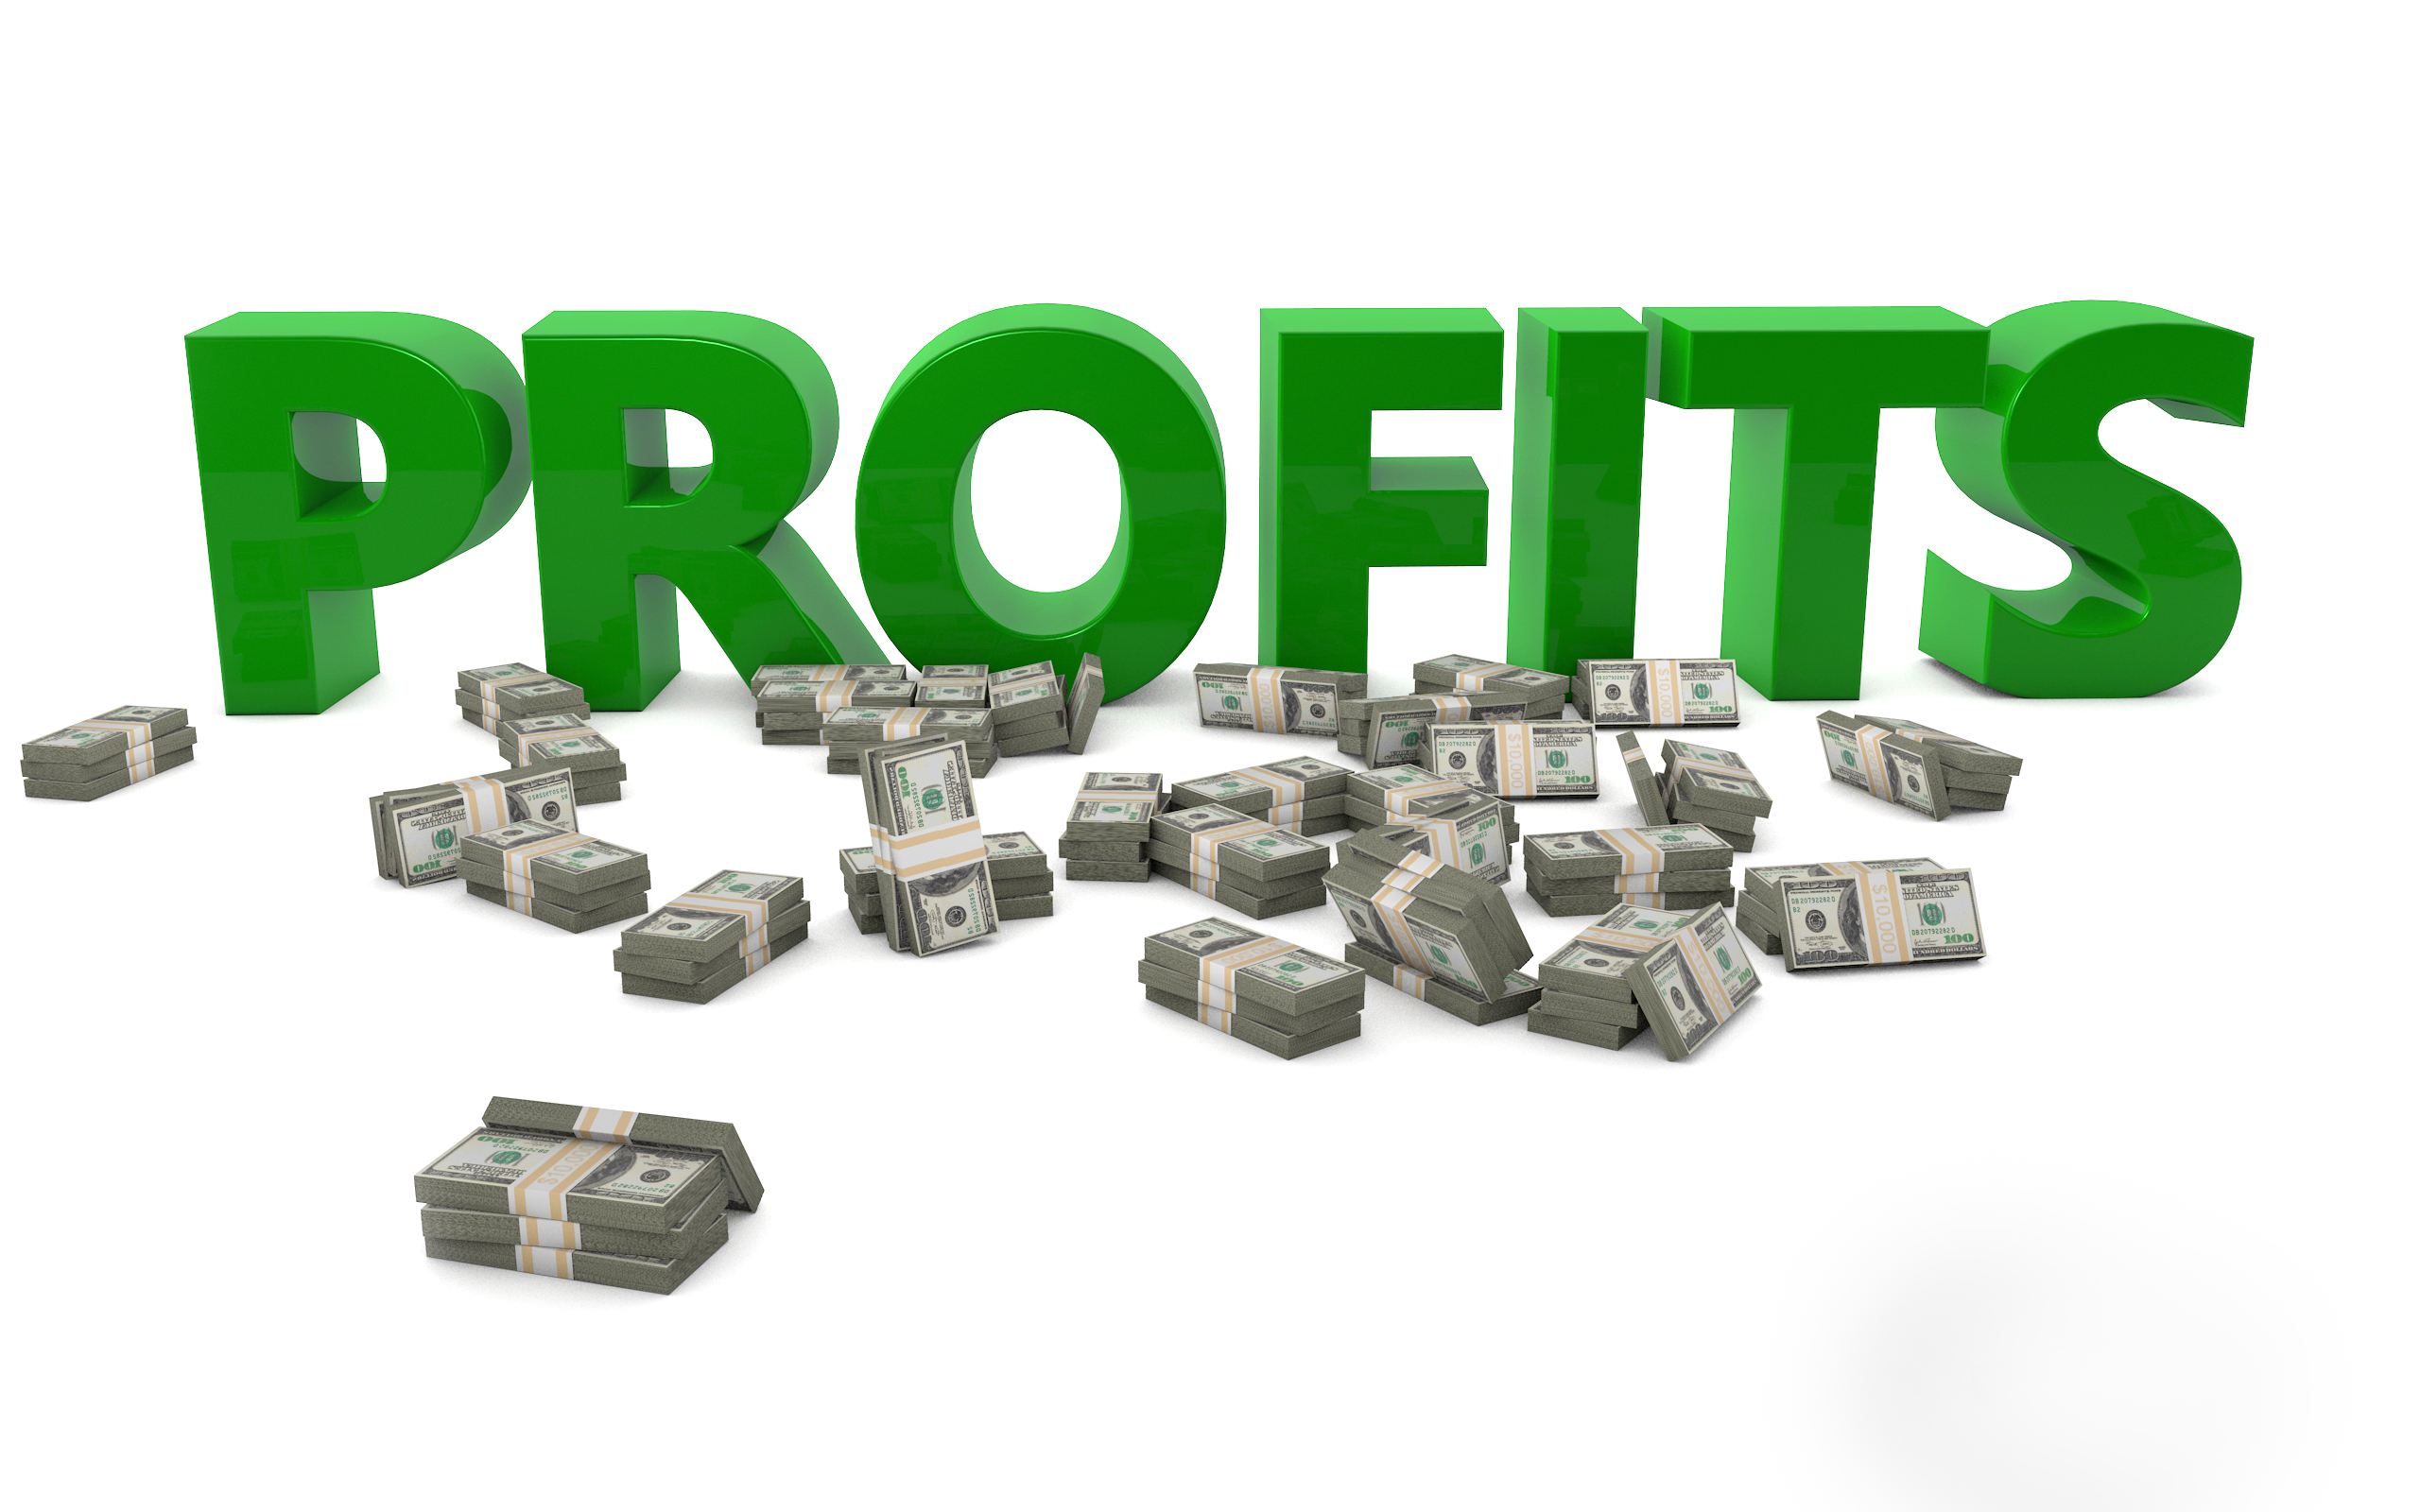 Profits - A free content marketing illustration